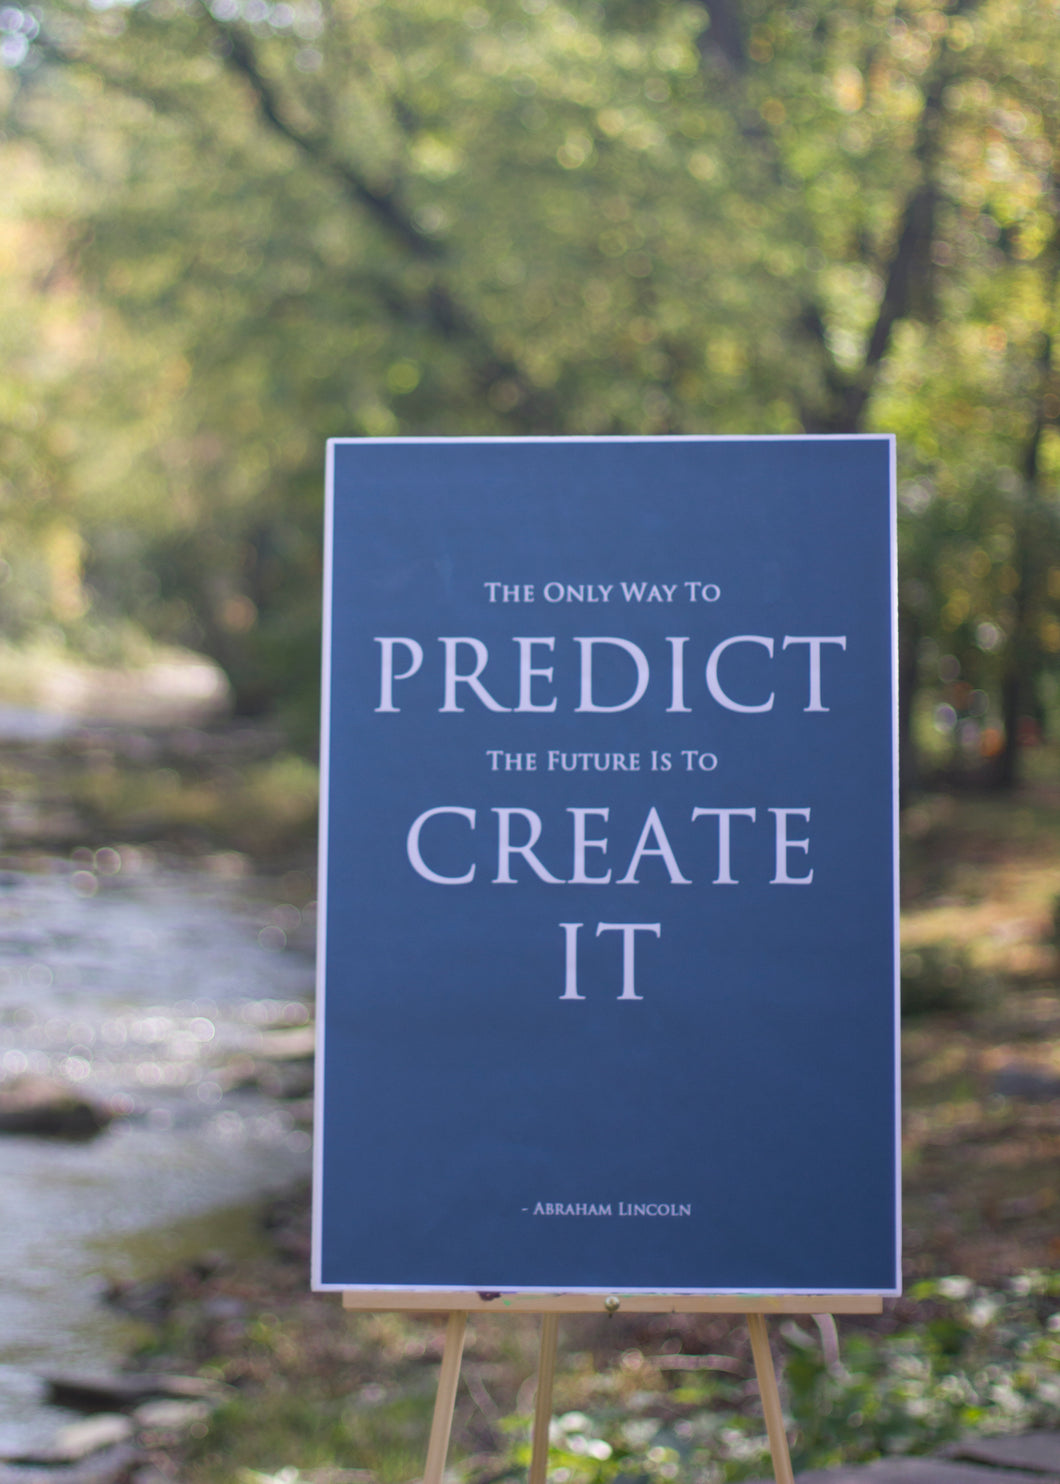 The only way to predict the future is to create it. Motivational Poster.